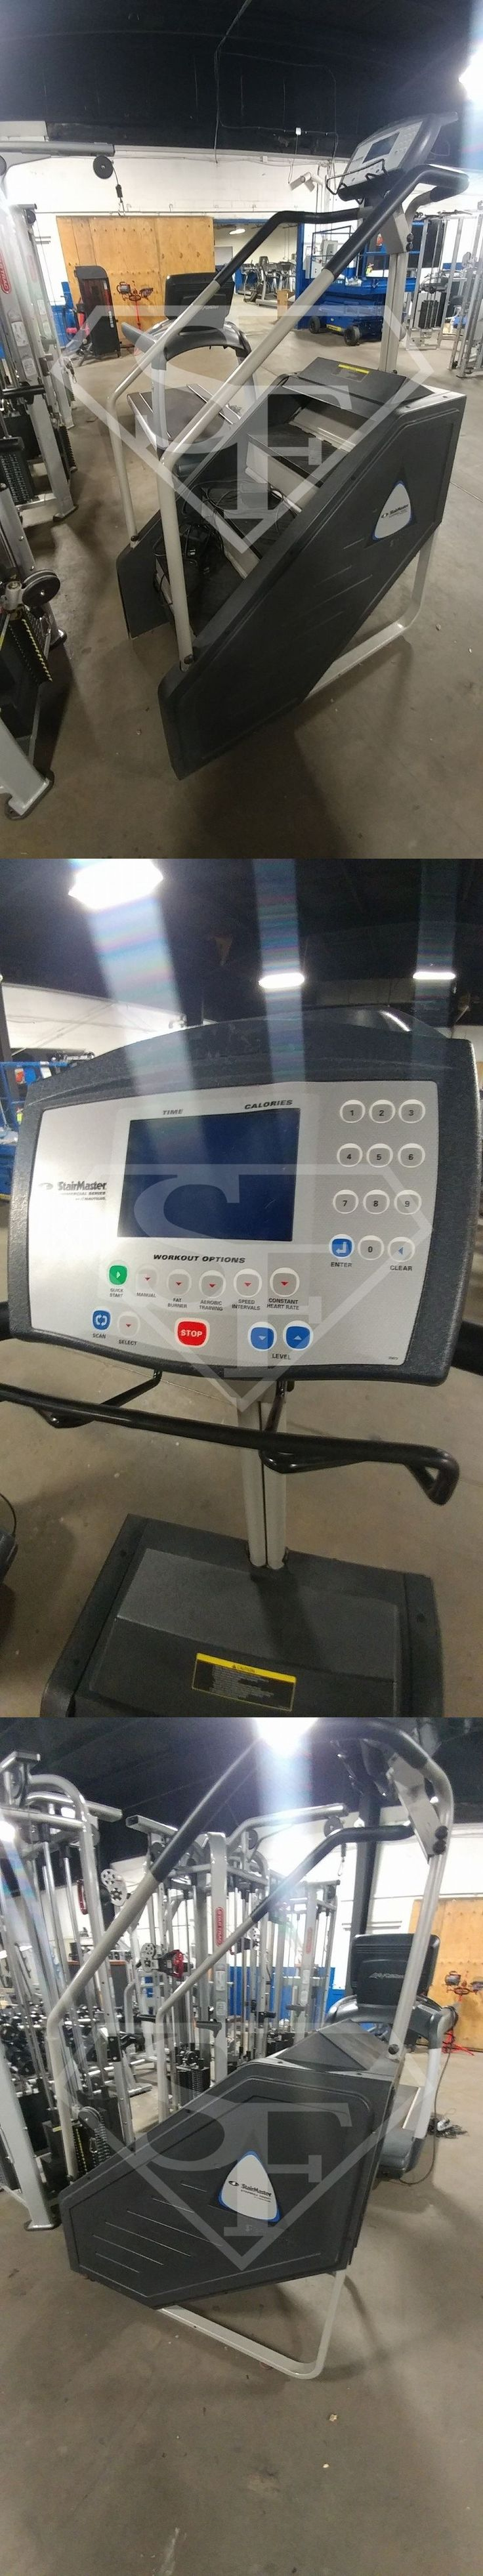 Stair Machines and Steppers 28062: Stairmaster 7000Pt Cleaned And Serviced Commercial Gym Equipment -> BUY IT NOW ONLY: $2299 on eBay!